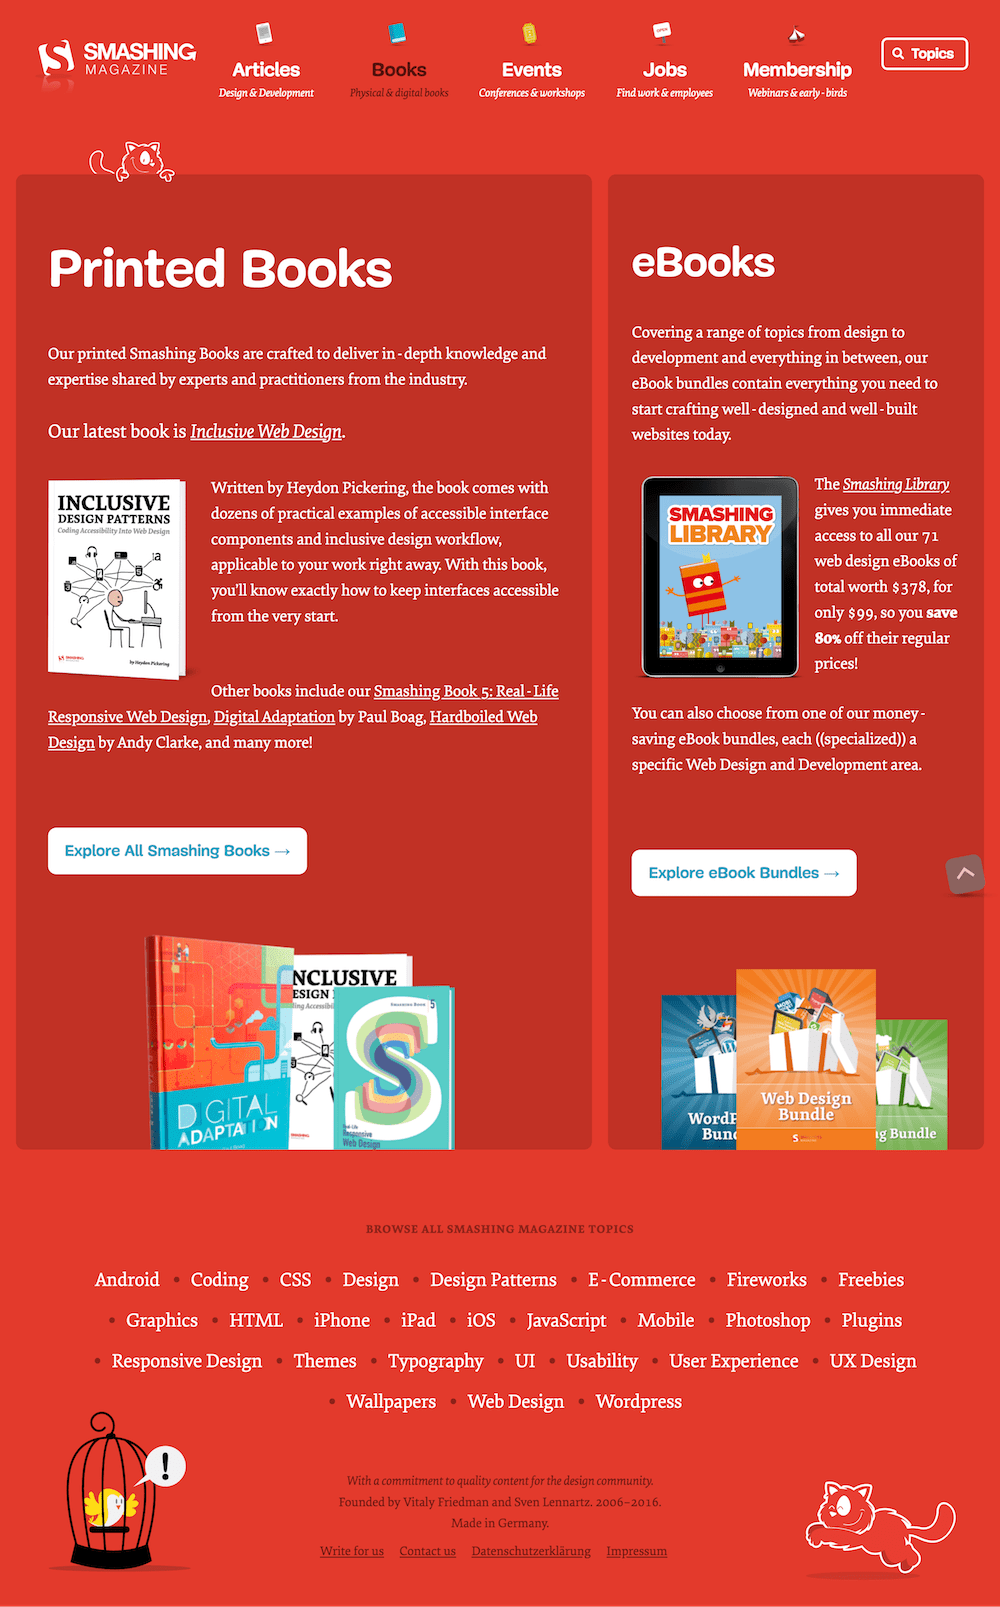 Screenshot of the Smashing Magazine Books page